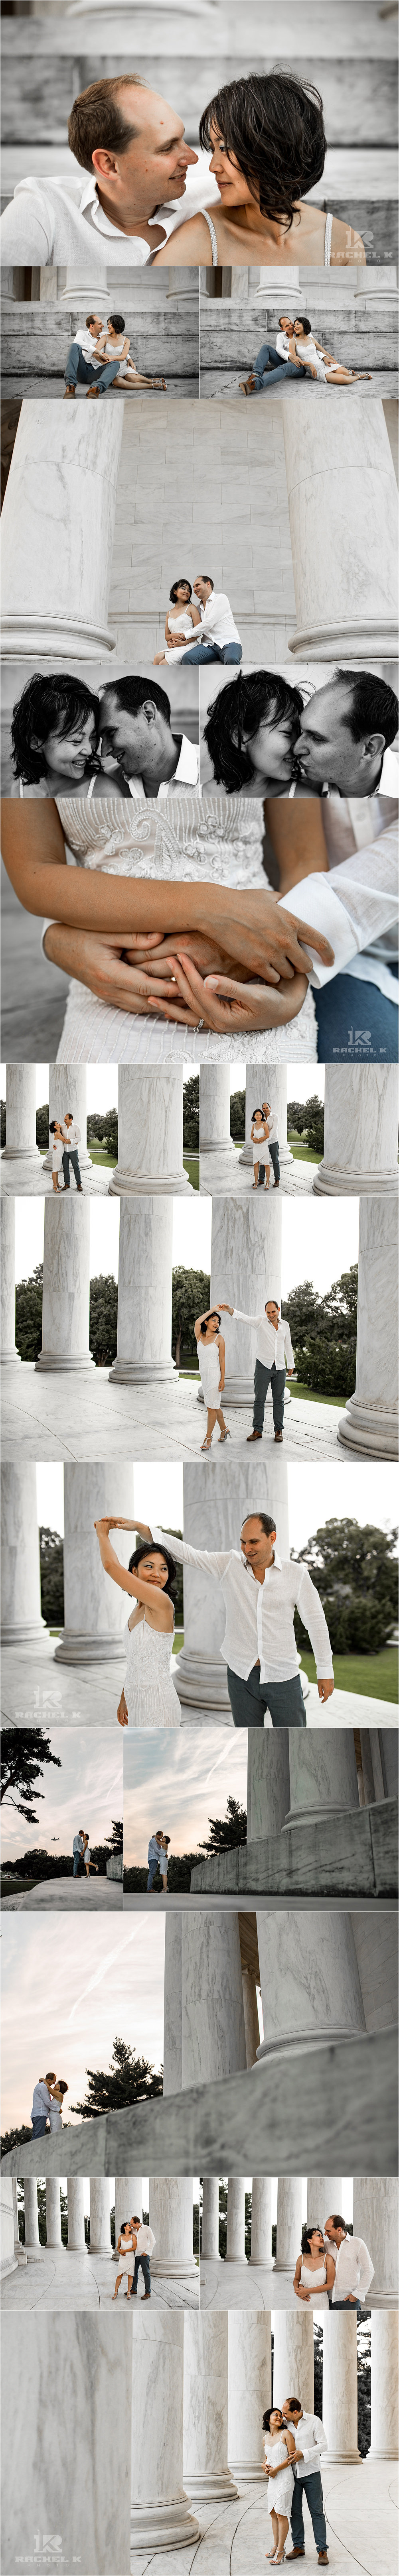 Jefferson memorial photography session by Rachel K Photo